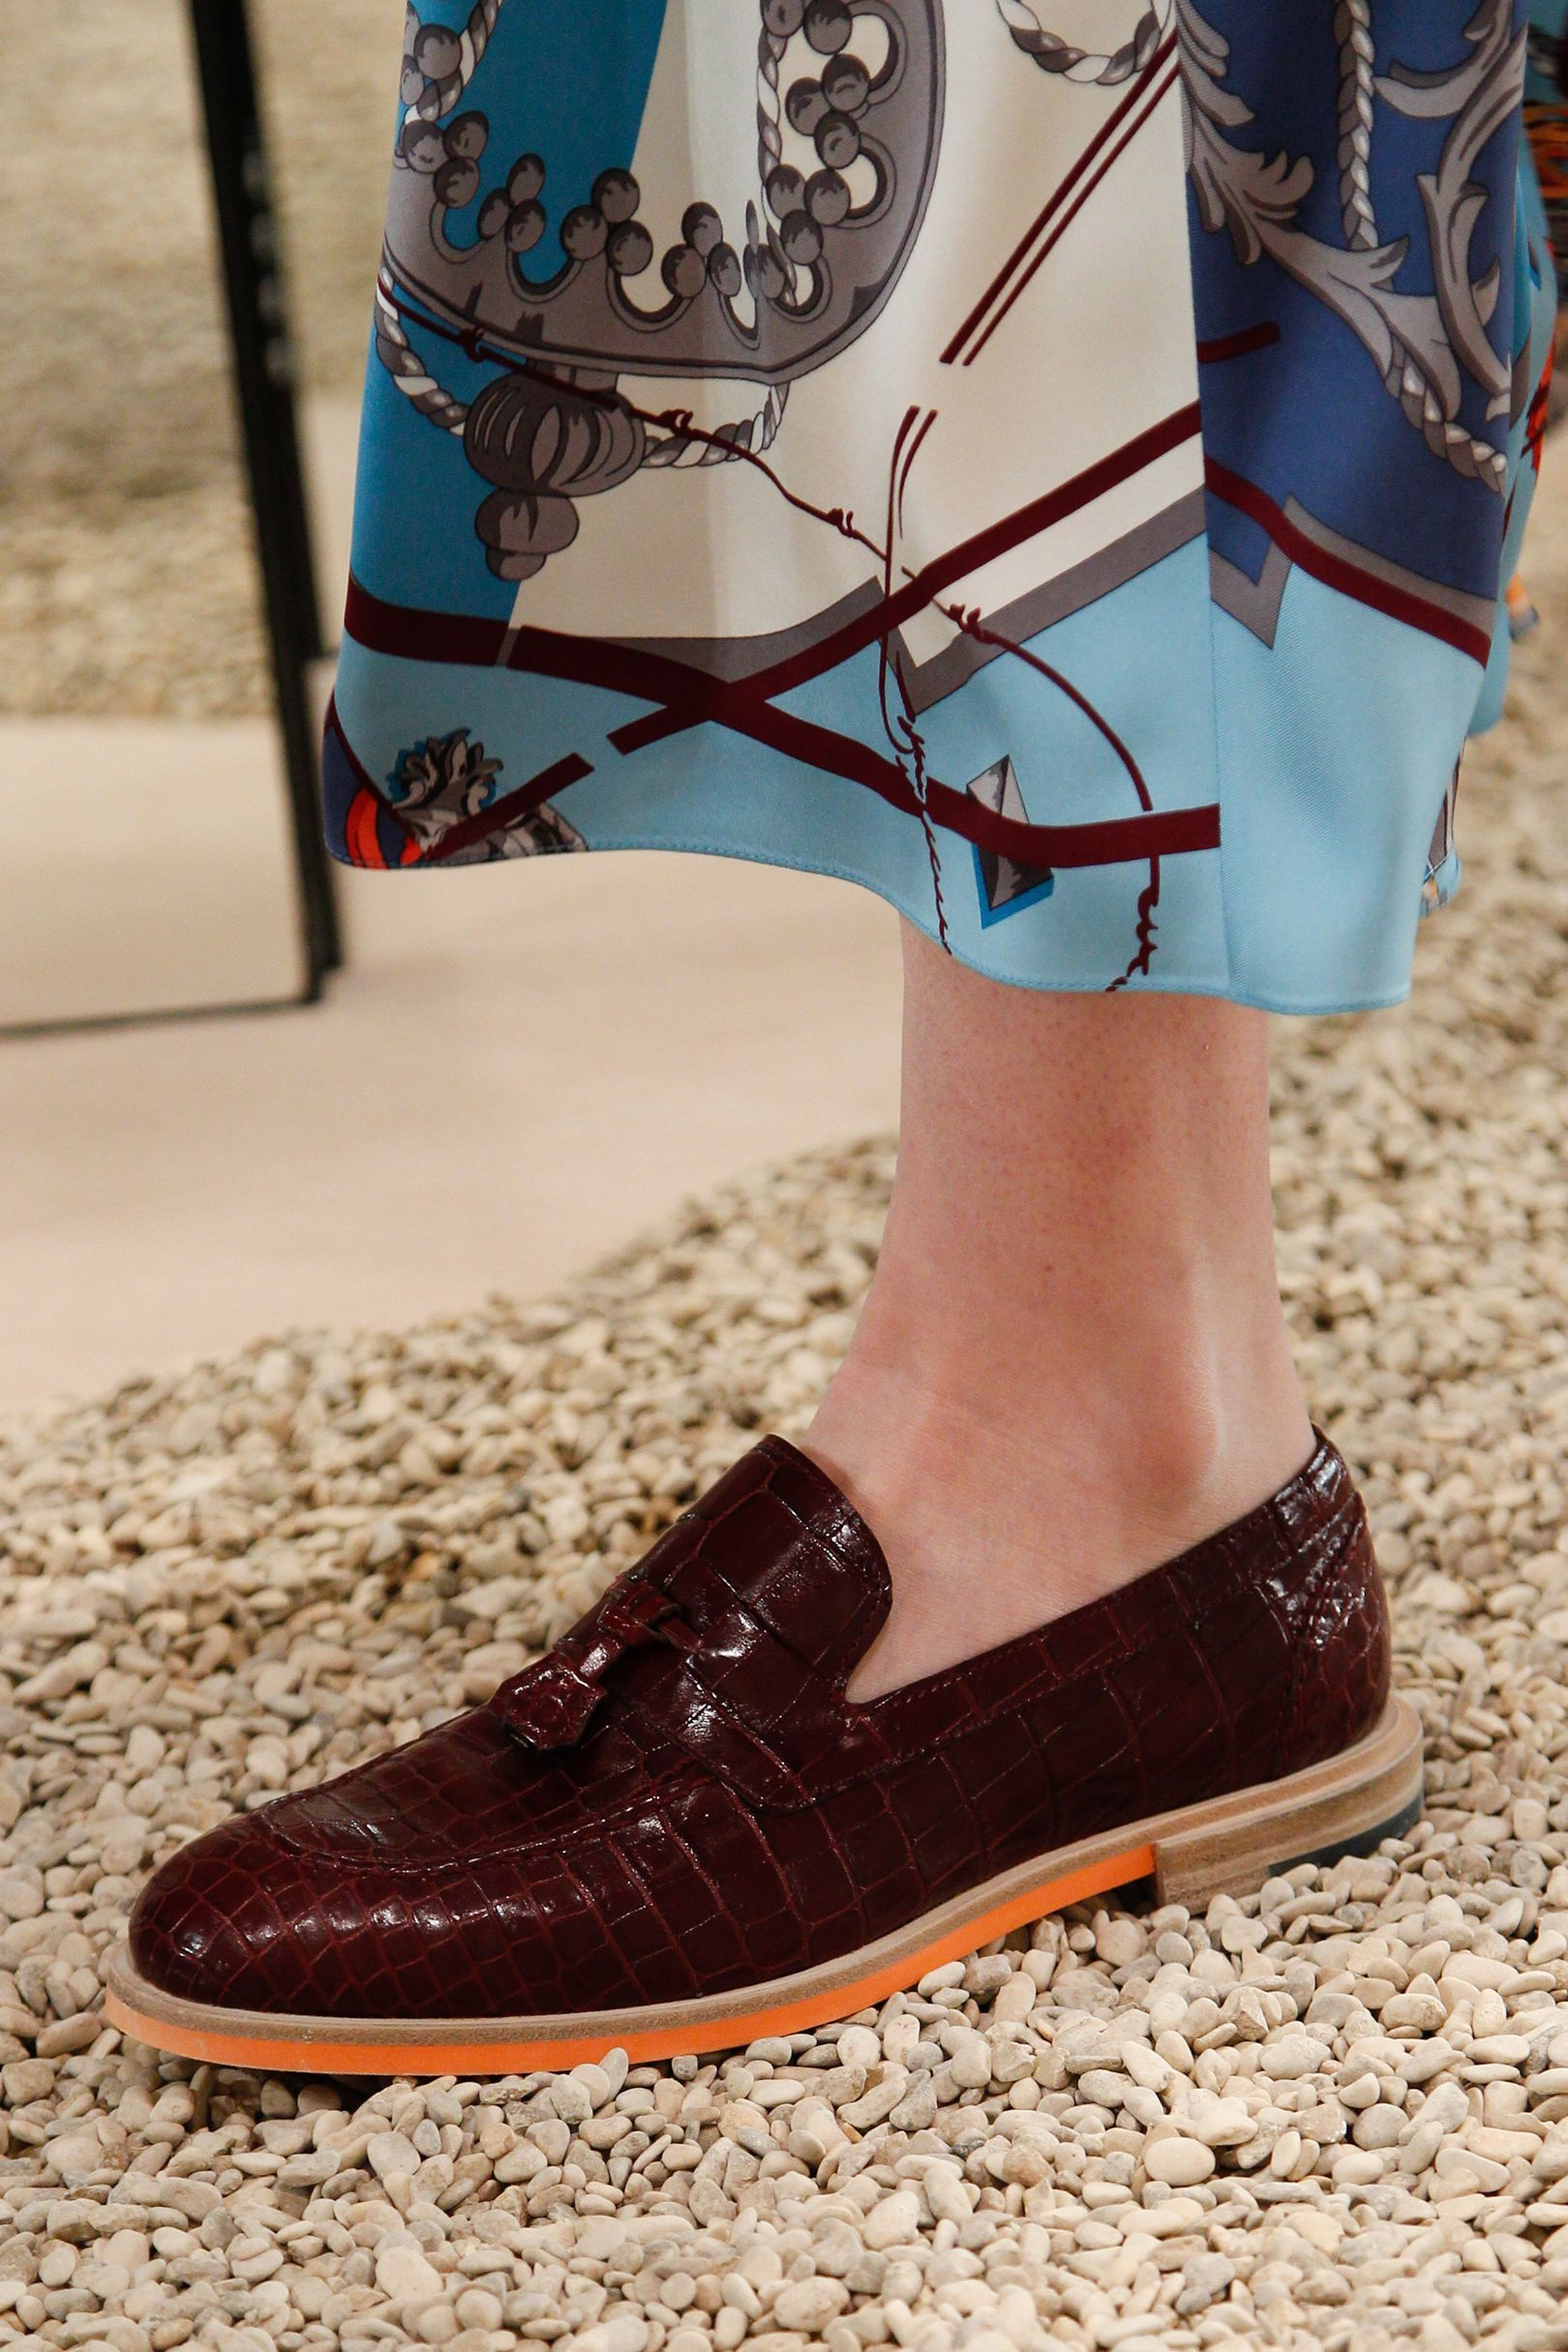 Hermès Spring/Summer 2018 Resort. Gucci ShoesWinter ...